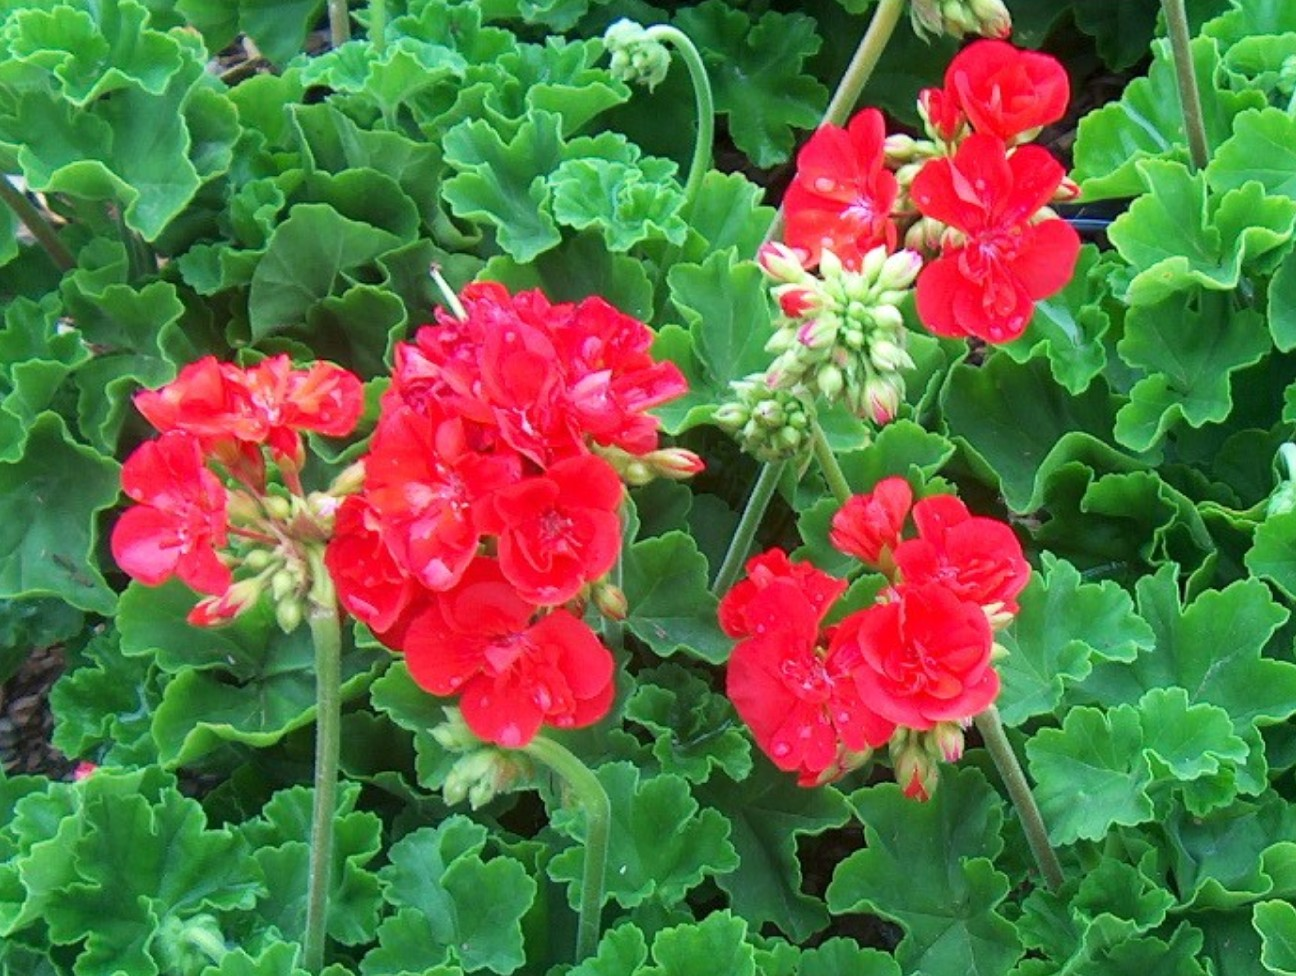 Pelargonium hortorum 'Allure Hot Coral'  / Pelargonium hortorum 'Allure Hot Coral'